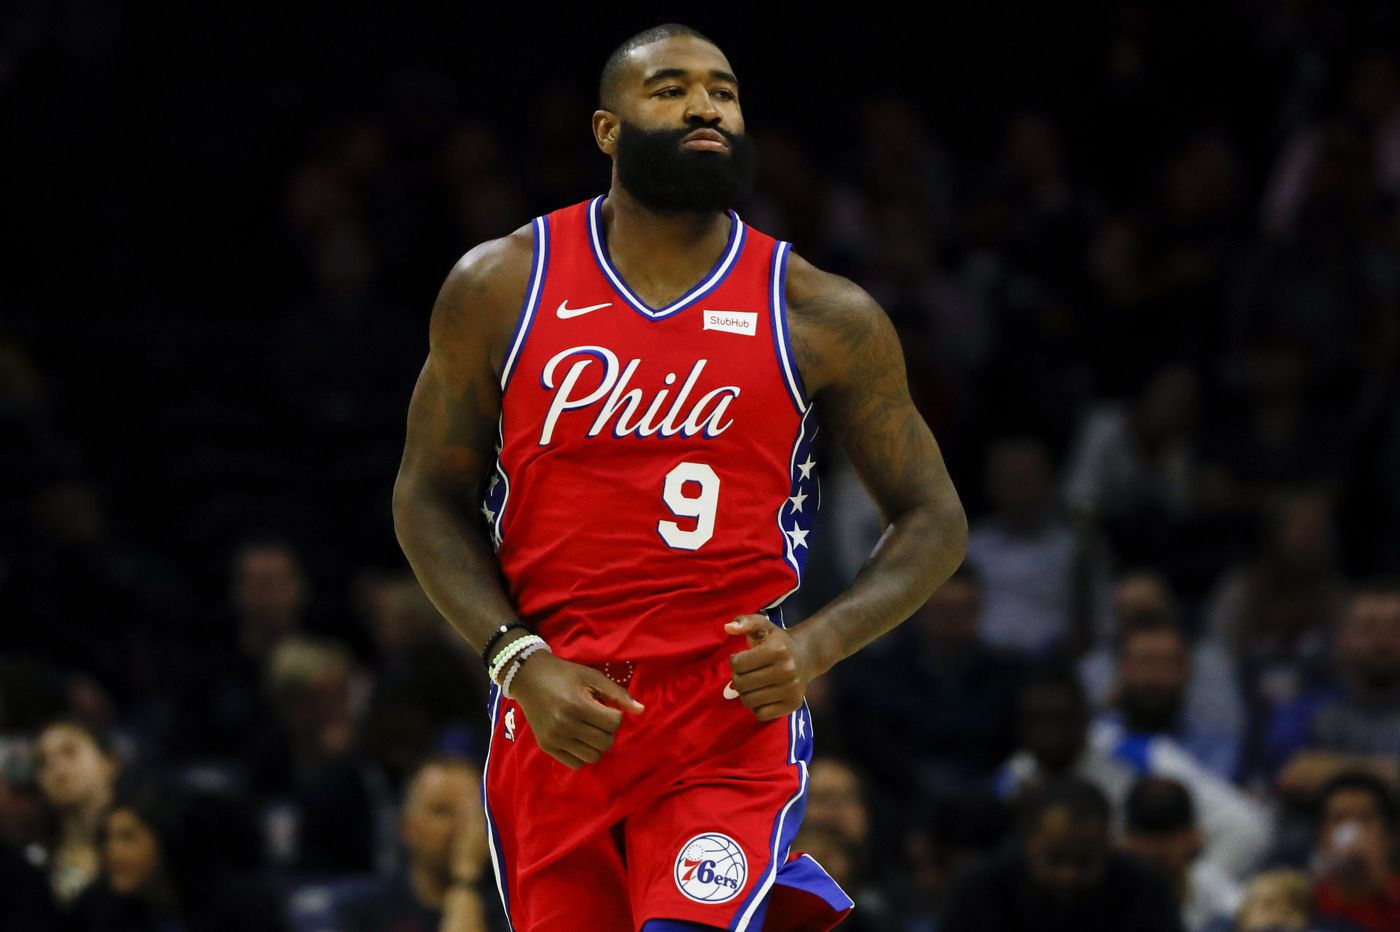 Sixers' Kyle O'Quinn sat out vs. Spurs after missing COVID-19 test